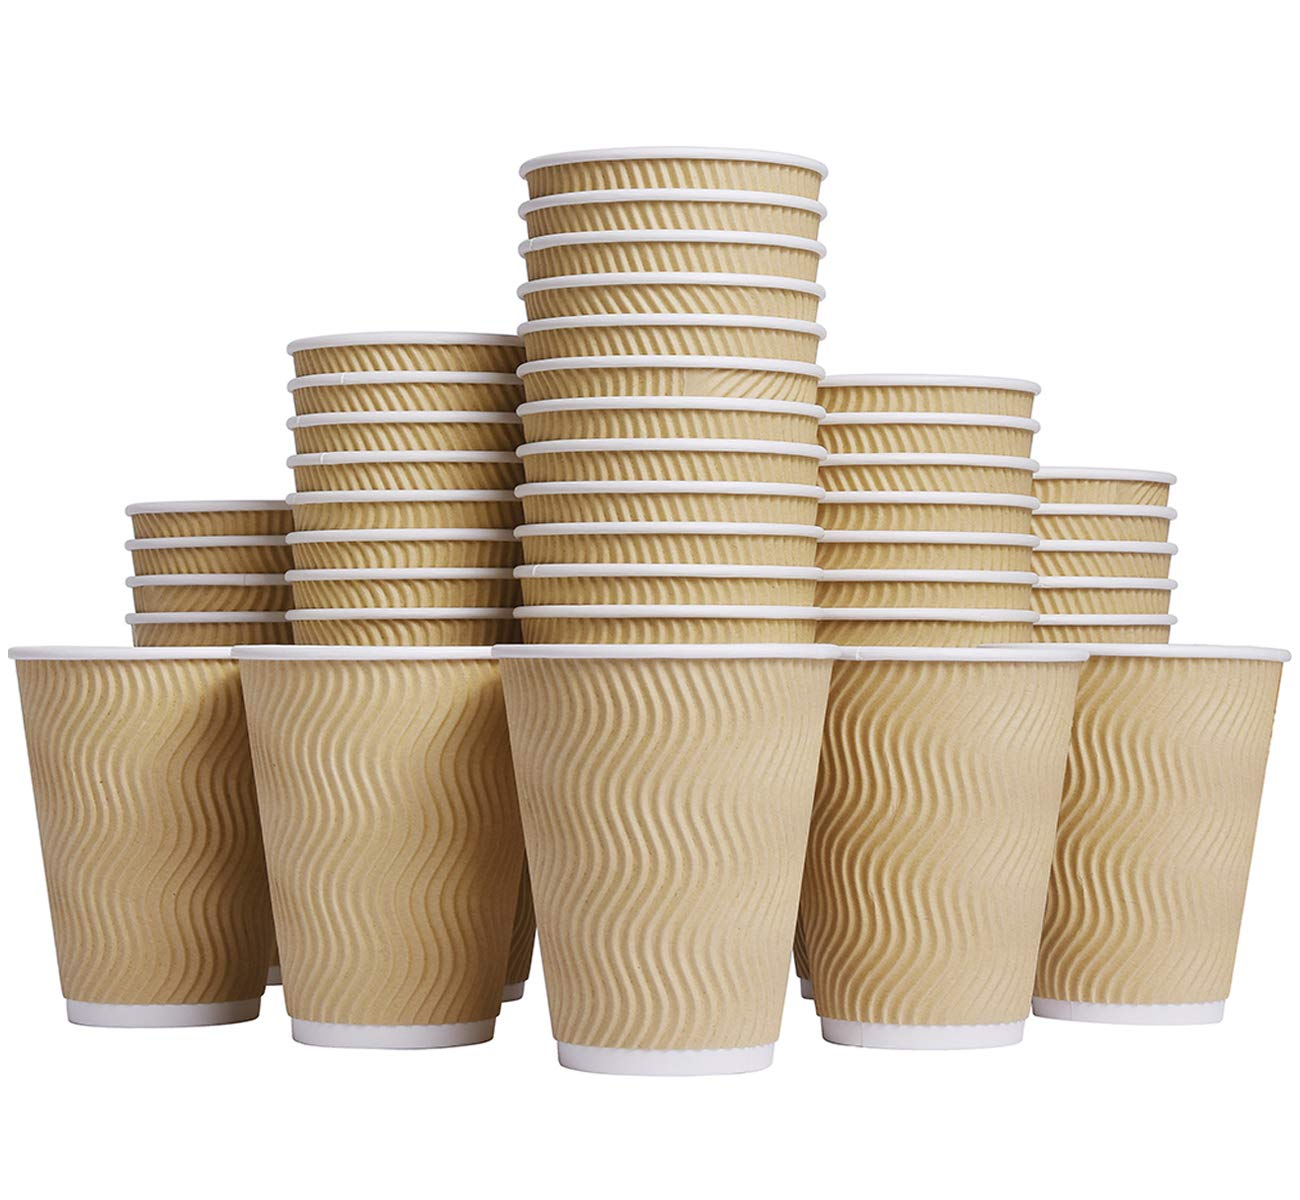 Luckypack Hot Paper Cups_12 oz Disposable Insulated Corrugated Sleeve Ripple Wall Paper Cup for Drink,Hot Coffee Cups (100,12oz Cups)